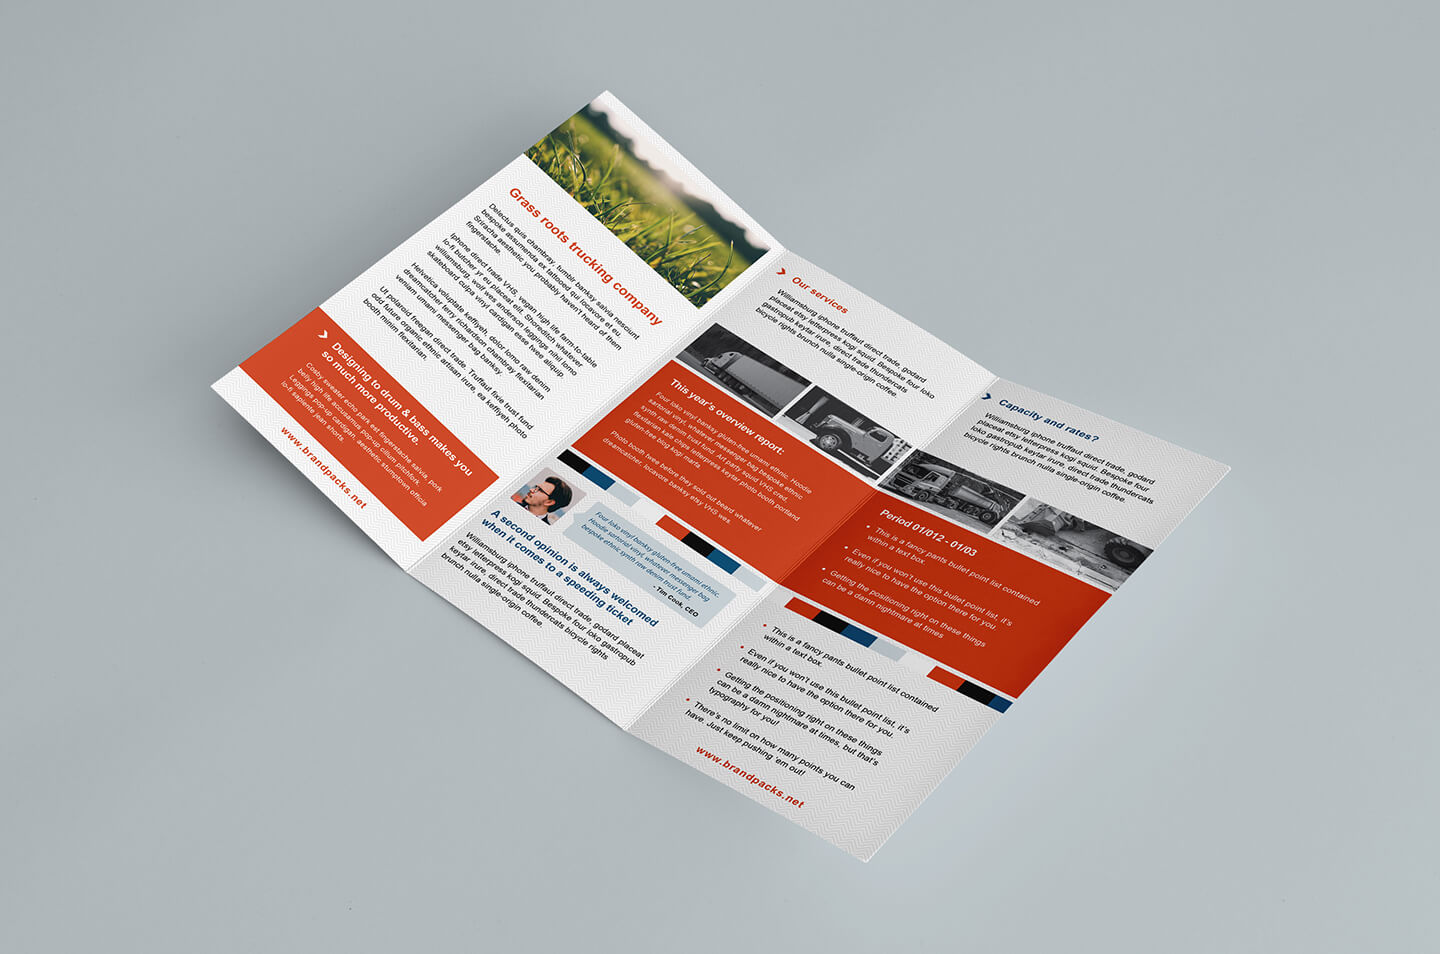 Free Trifold Brochure Template In Psd, Ai & Vector - Brandpacks pertaining to Pop Up Brochure Template